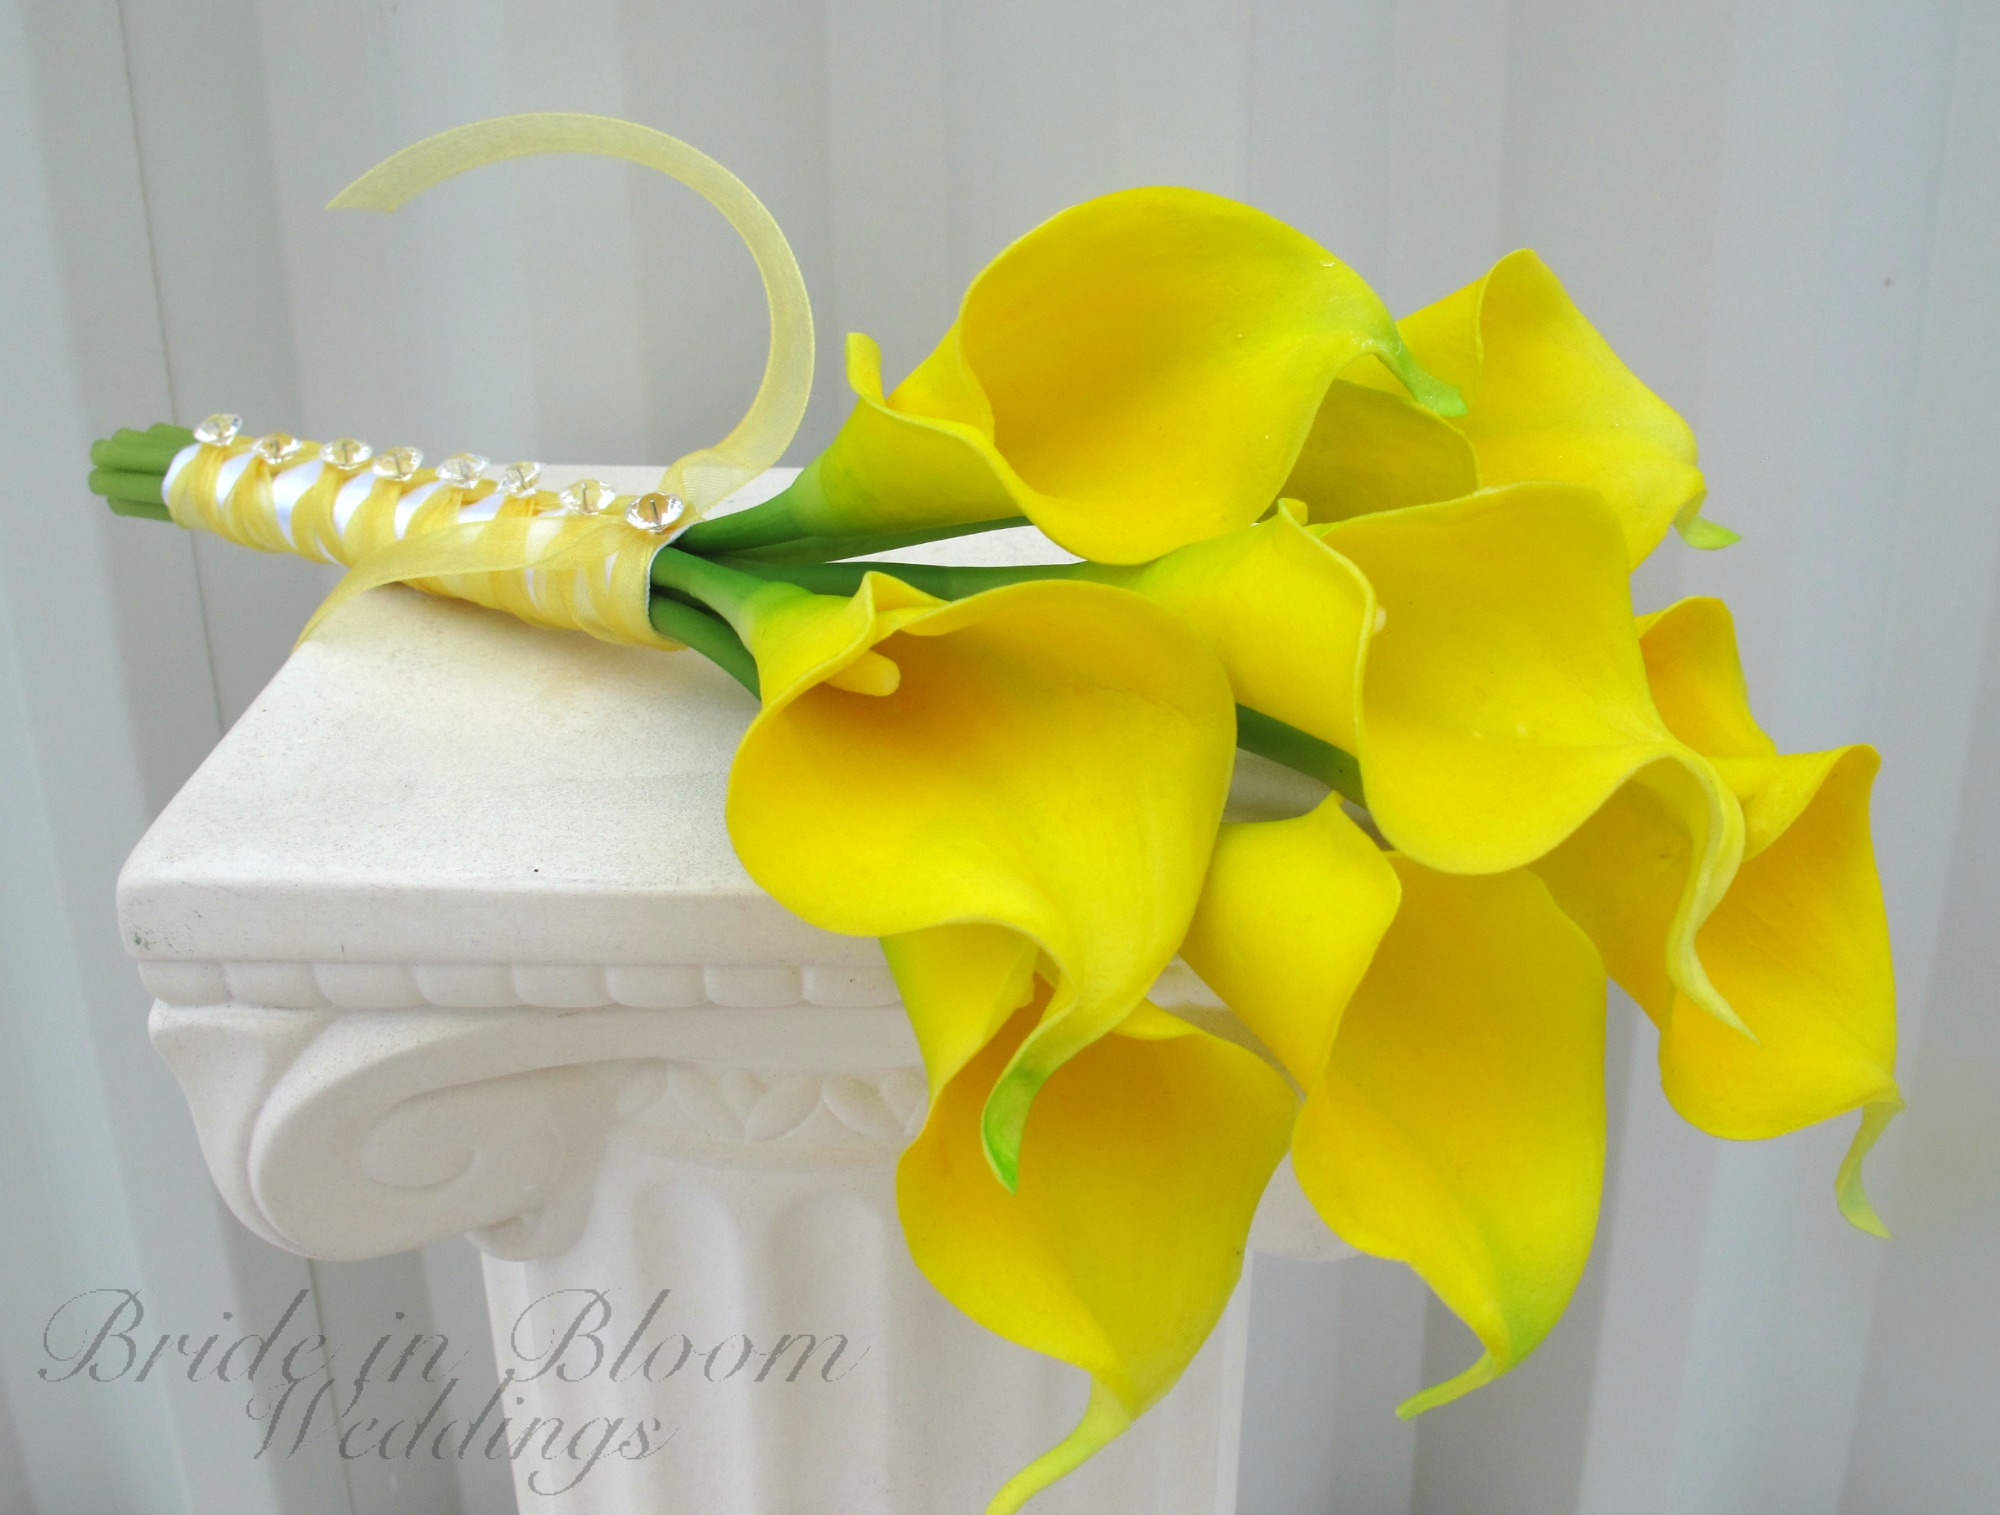 Yellow calla lilies 22 free wallpaper hdflowerwallpaper yellow calla lilies hd wallpaper dhlflorist Images